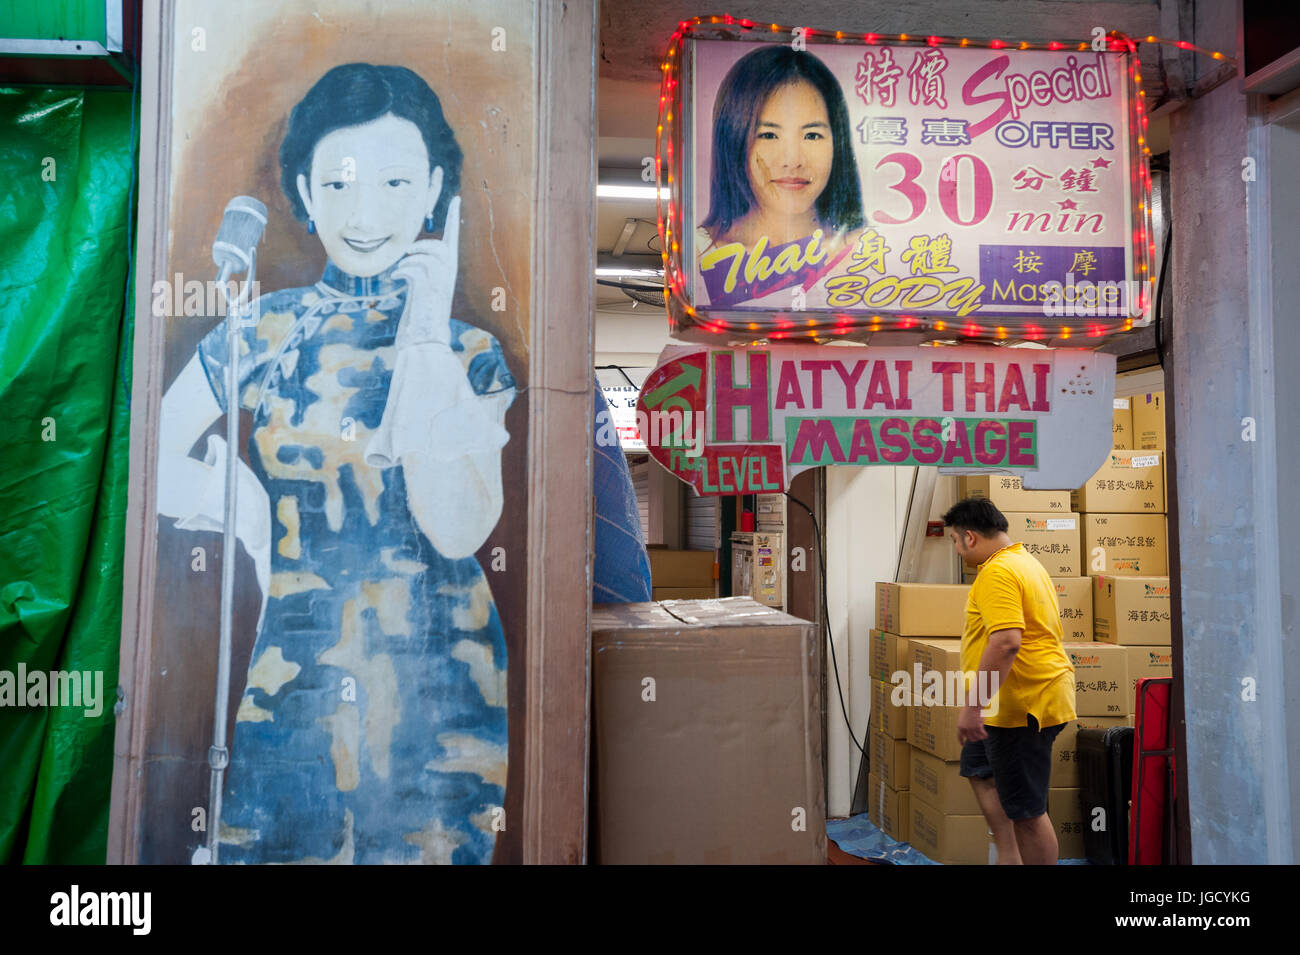 Asian Massage Parlour Stock Photos  Asian Massage Parlour Stock Images - Alamy-1549